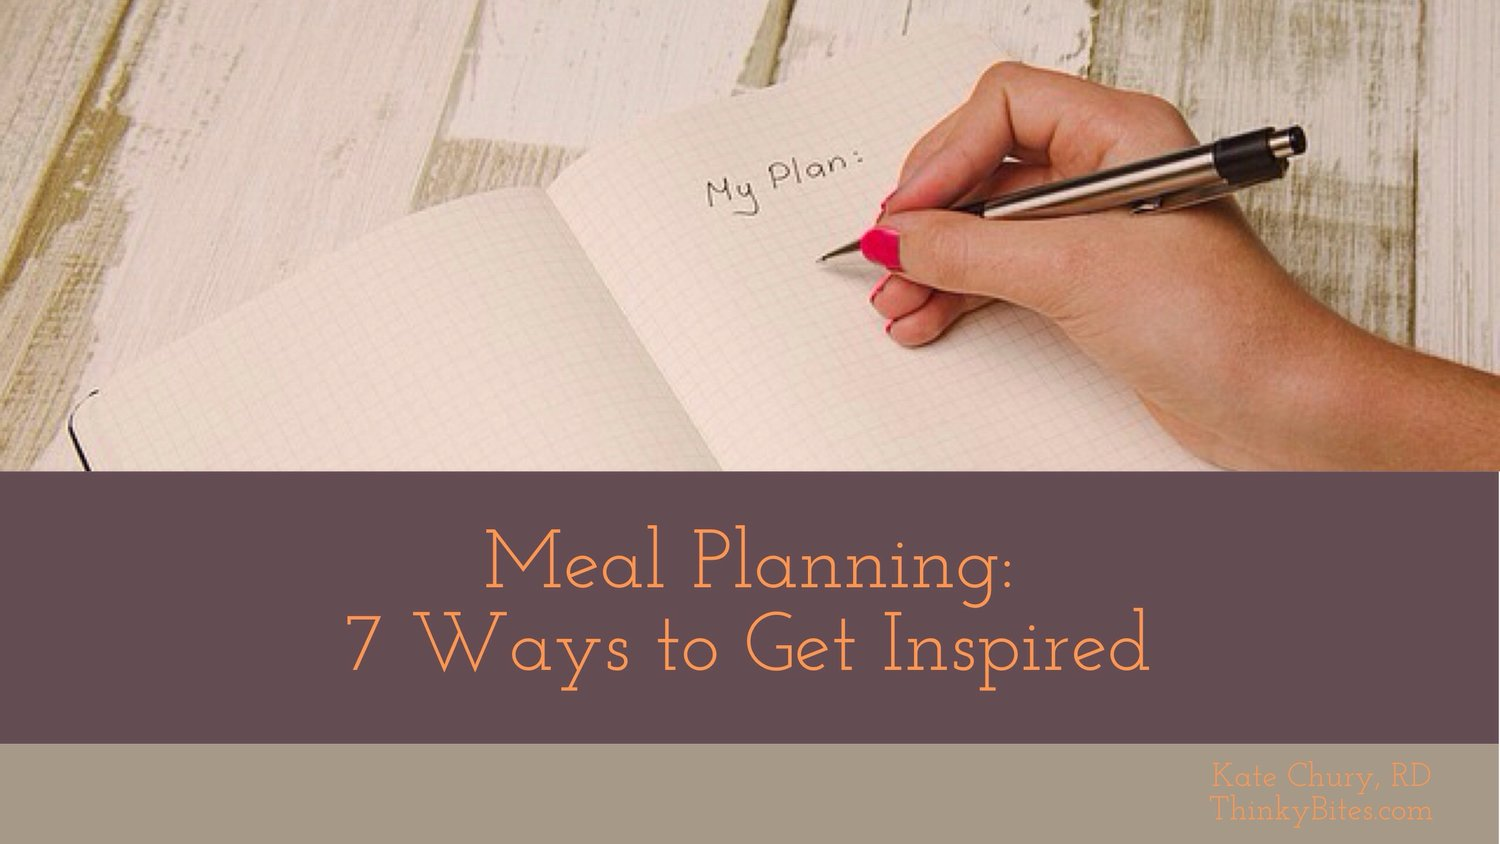 Meal Planning: 7 Ways to Get Inspired